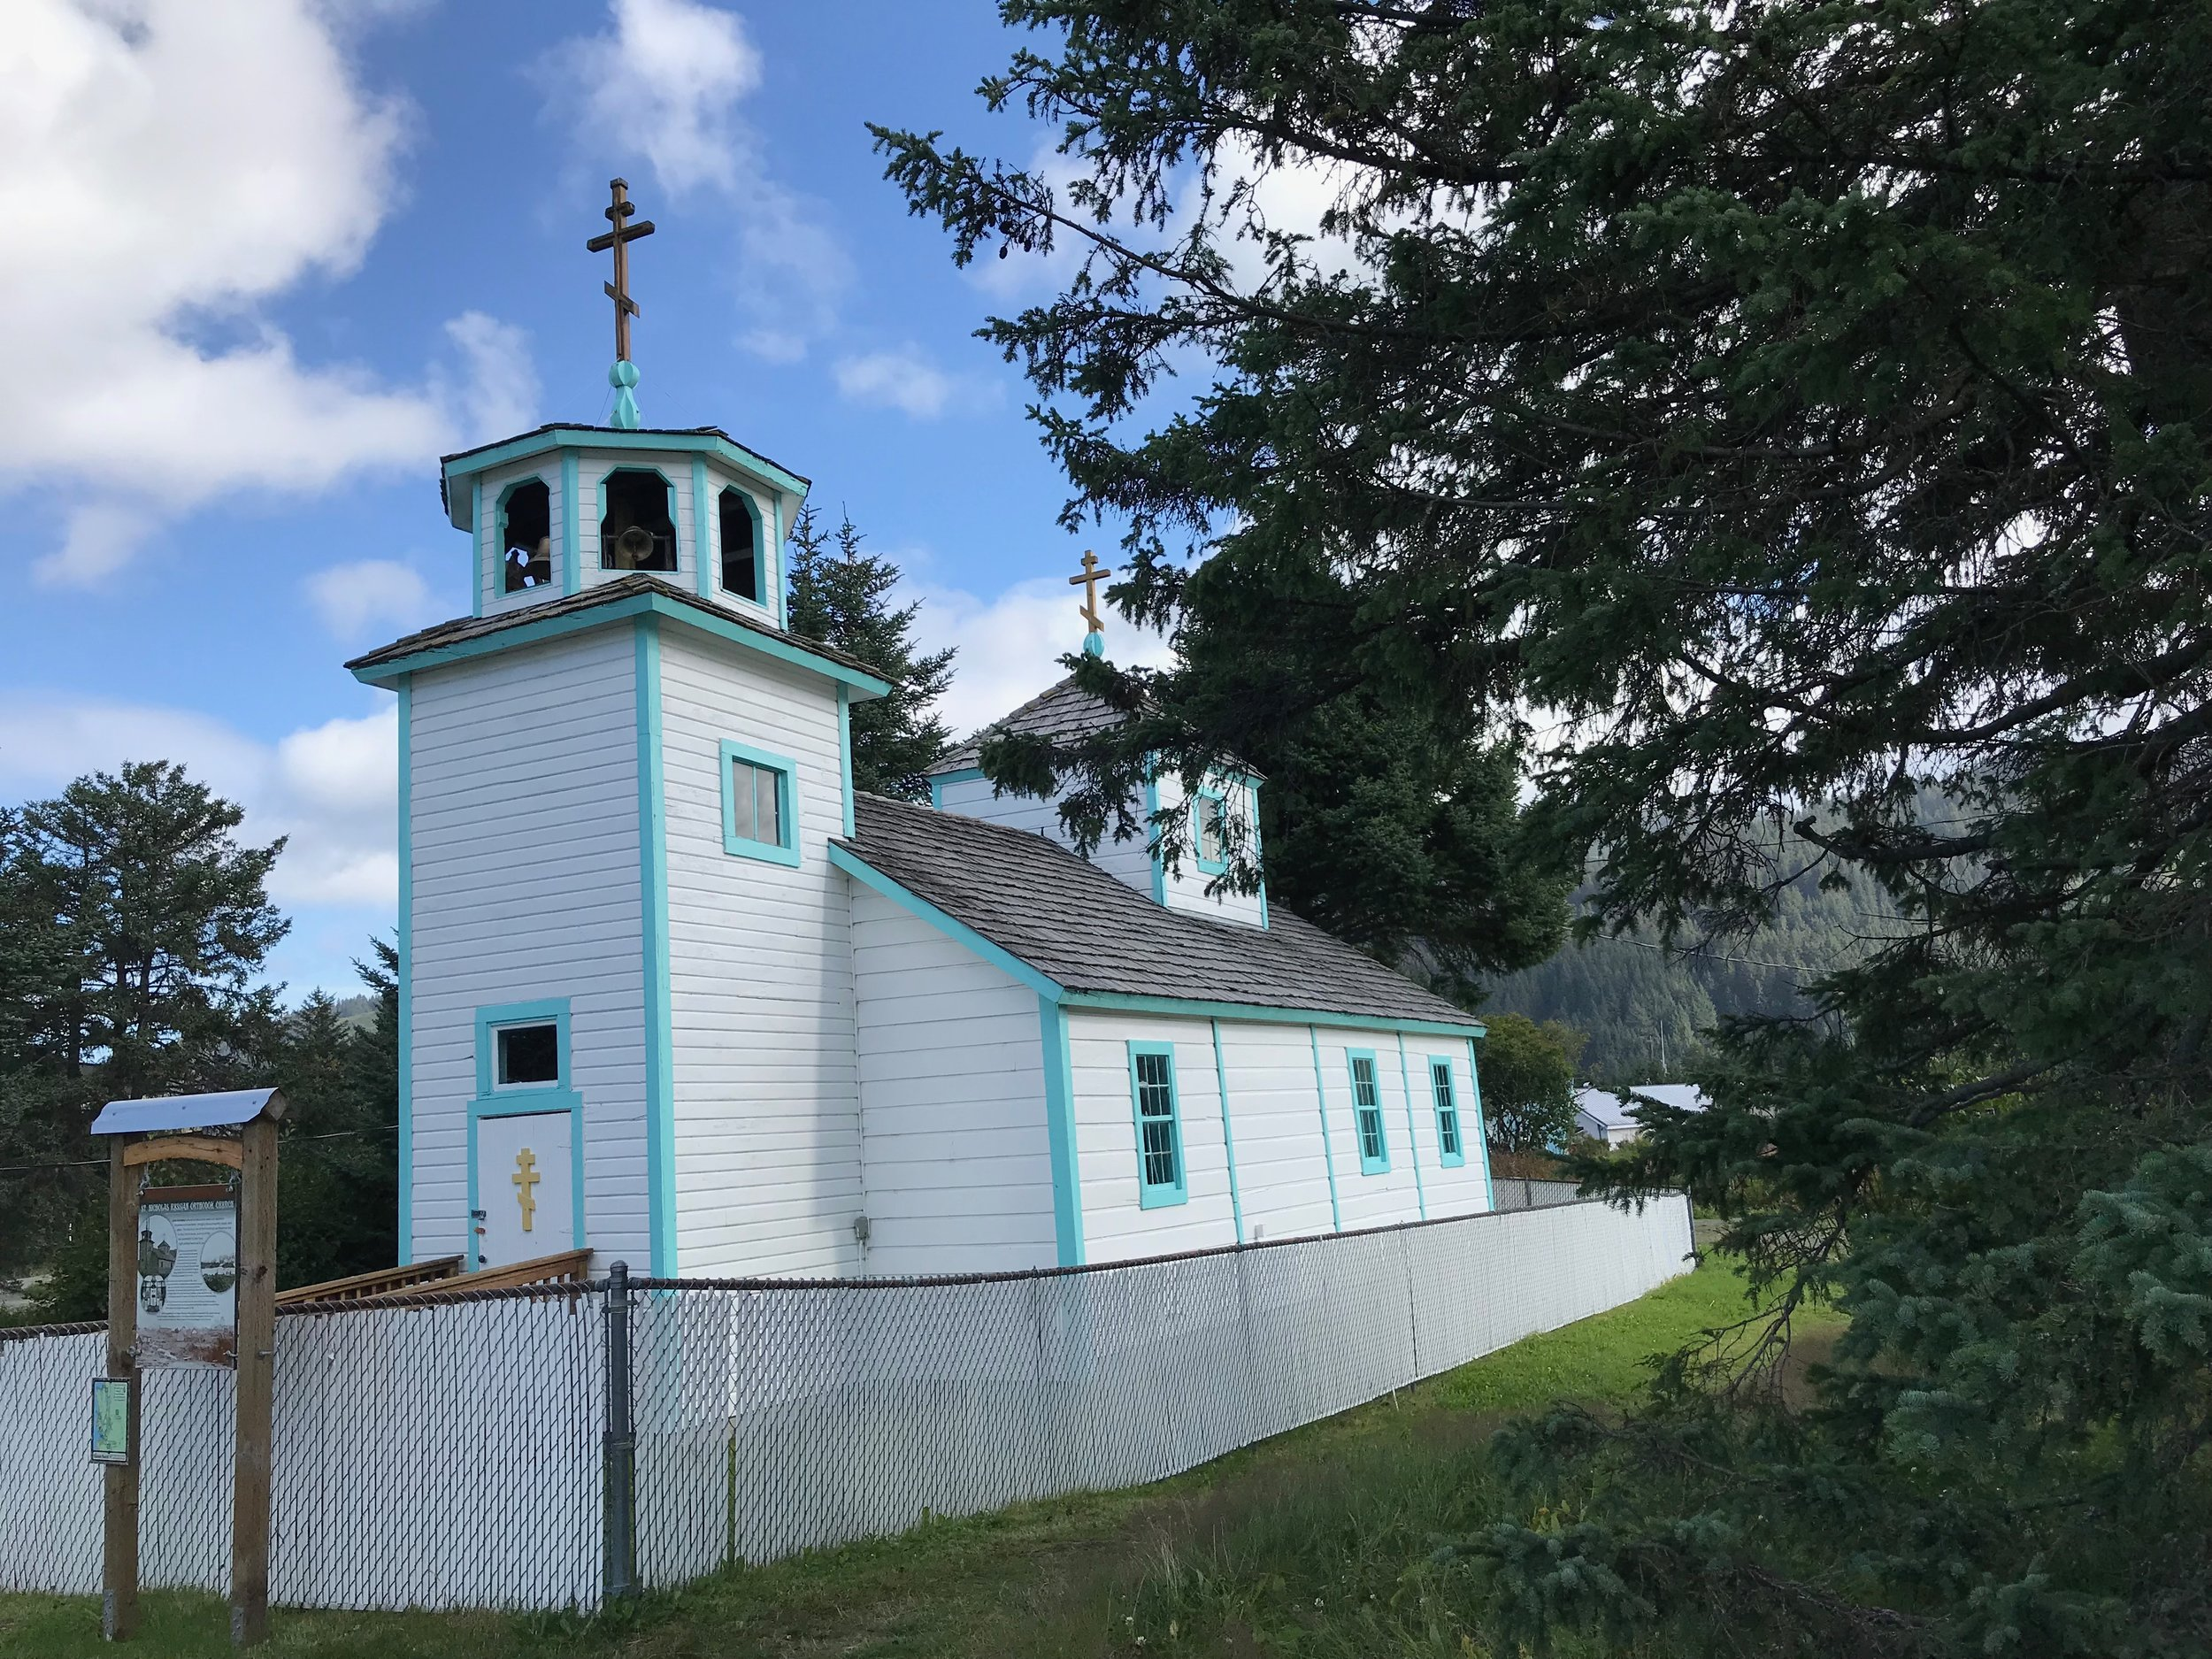 Seldovia was founded by Russian fur traders, who built St. Nicholas Church, which has no active congregation but is still maintained.